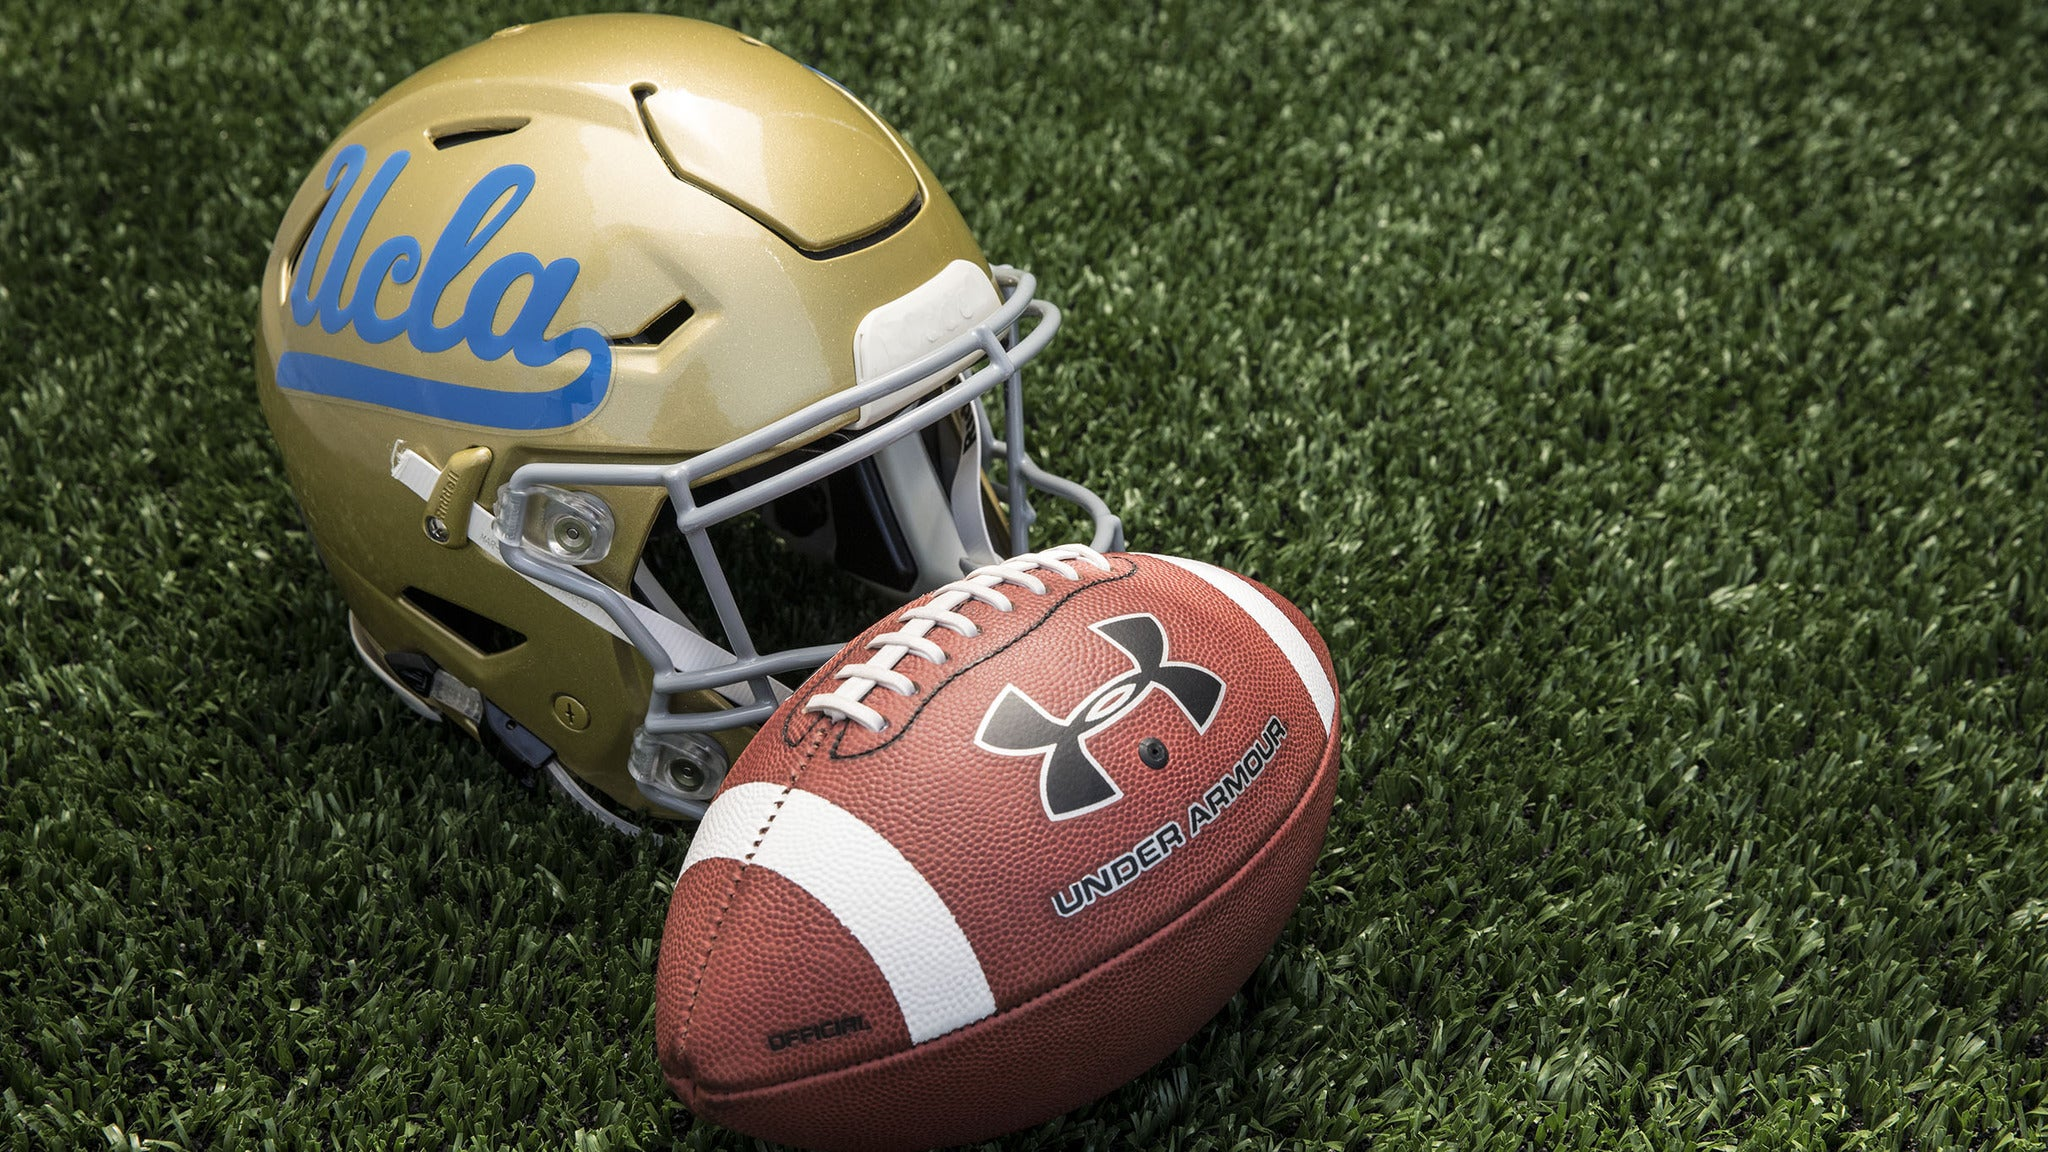 UCLA Bruins Football vs. USC Trojans at Rose Bowl